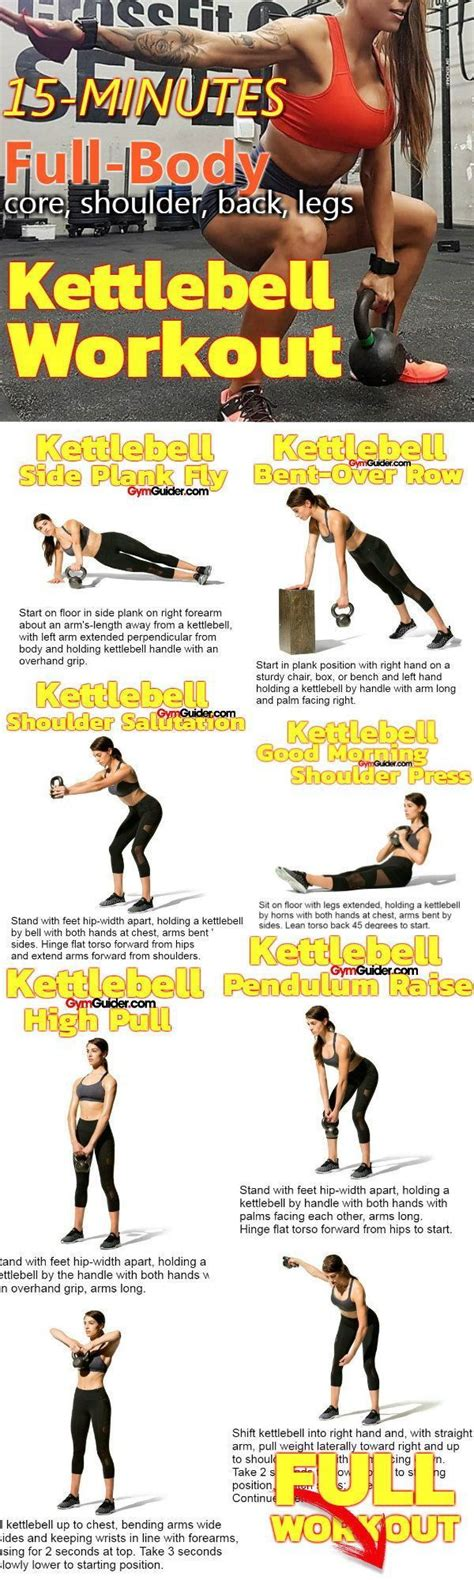 kettlebell exercises arms toned workout workouts effective most upper body muscles exercise meaning dumbbell strength routines gymguider program fitness